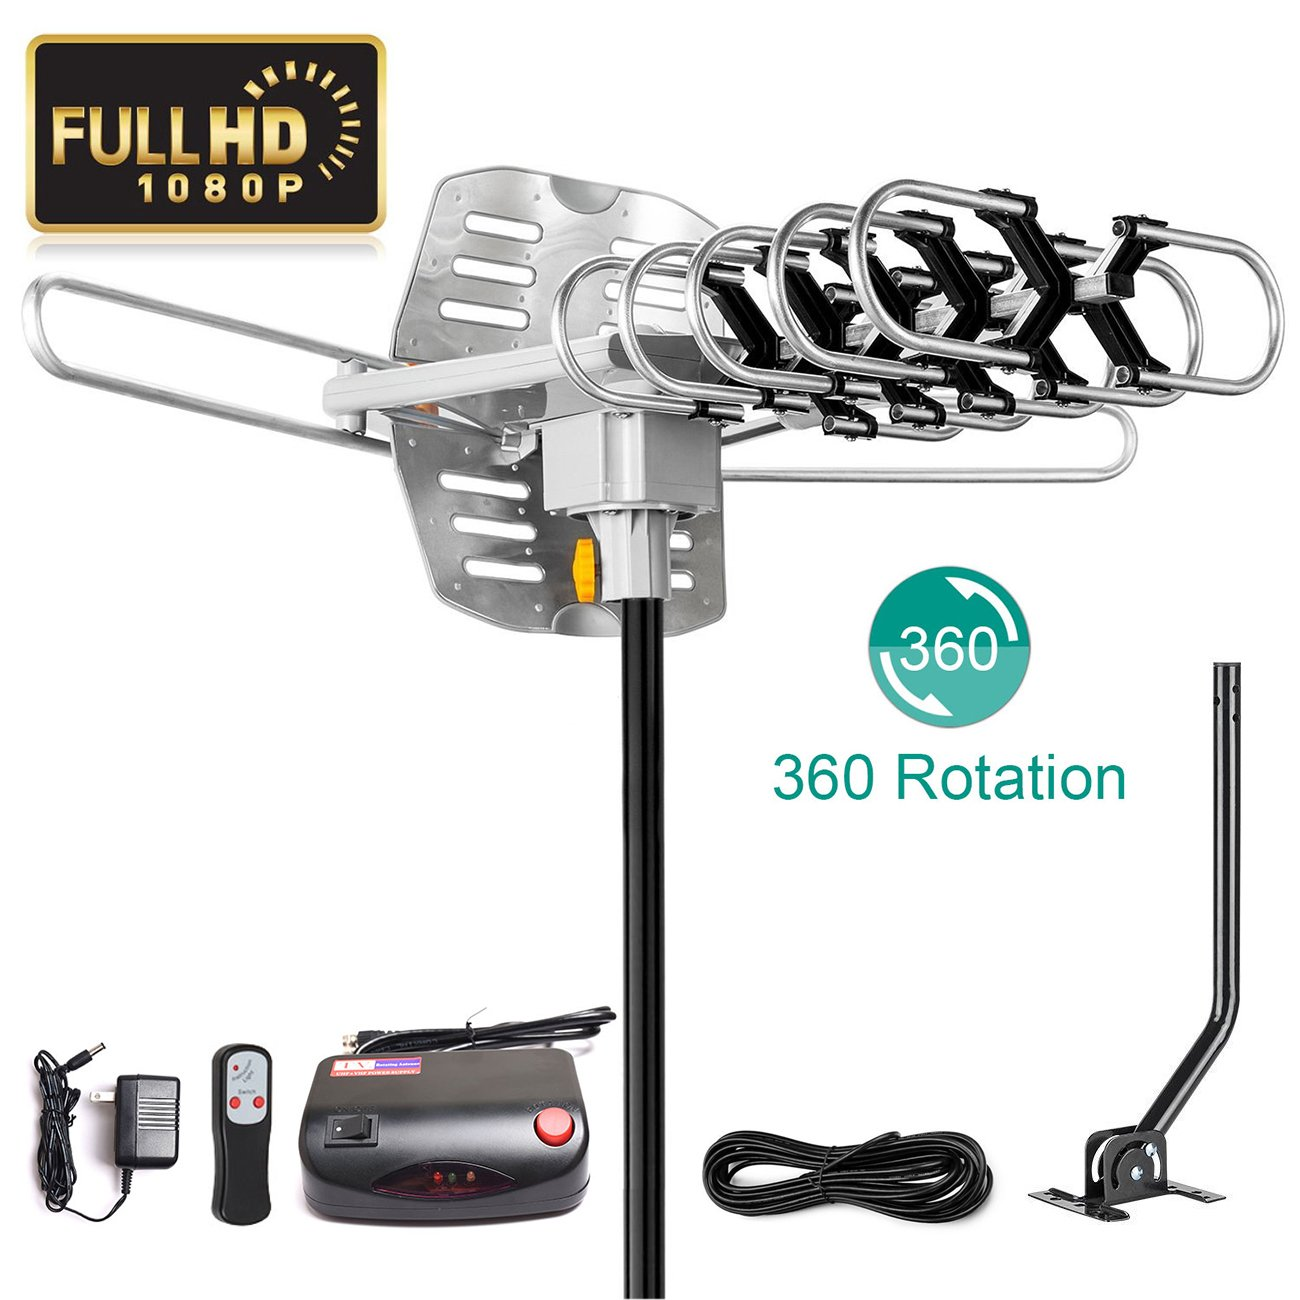 UPGRADED 2018 VERSION HD Digital TV Antenna Kit–Best 150 Miles Long Range High-Definition -UHF/VHF 4K 1080P Channels Wireless Remote Control - 33ft Coax Cable - Support All TV's-1080p 4K ready(W/pole)